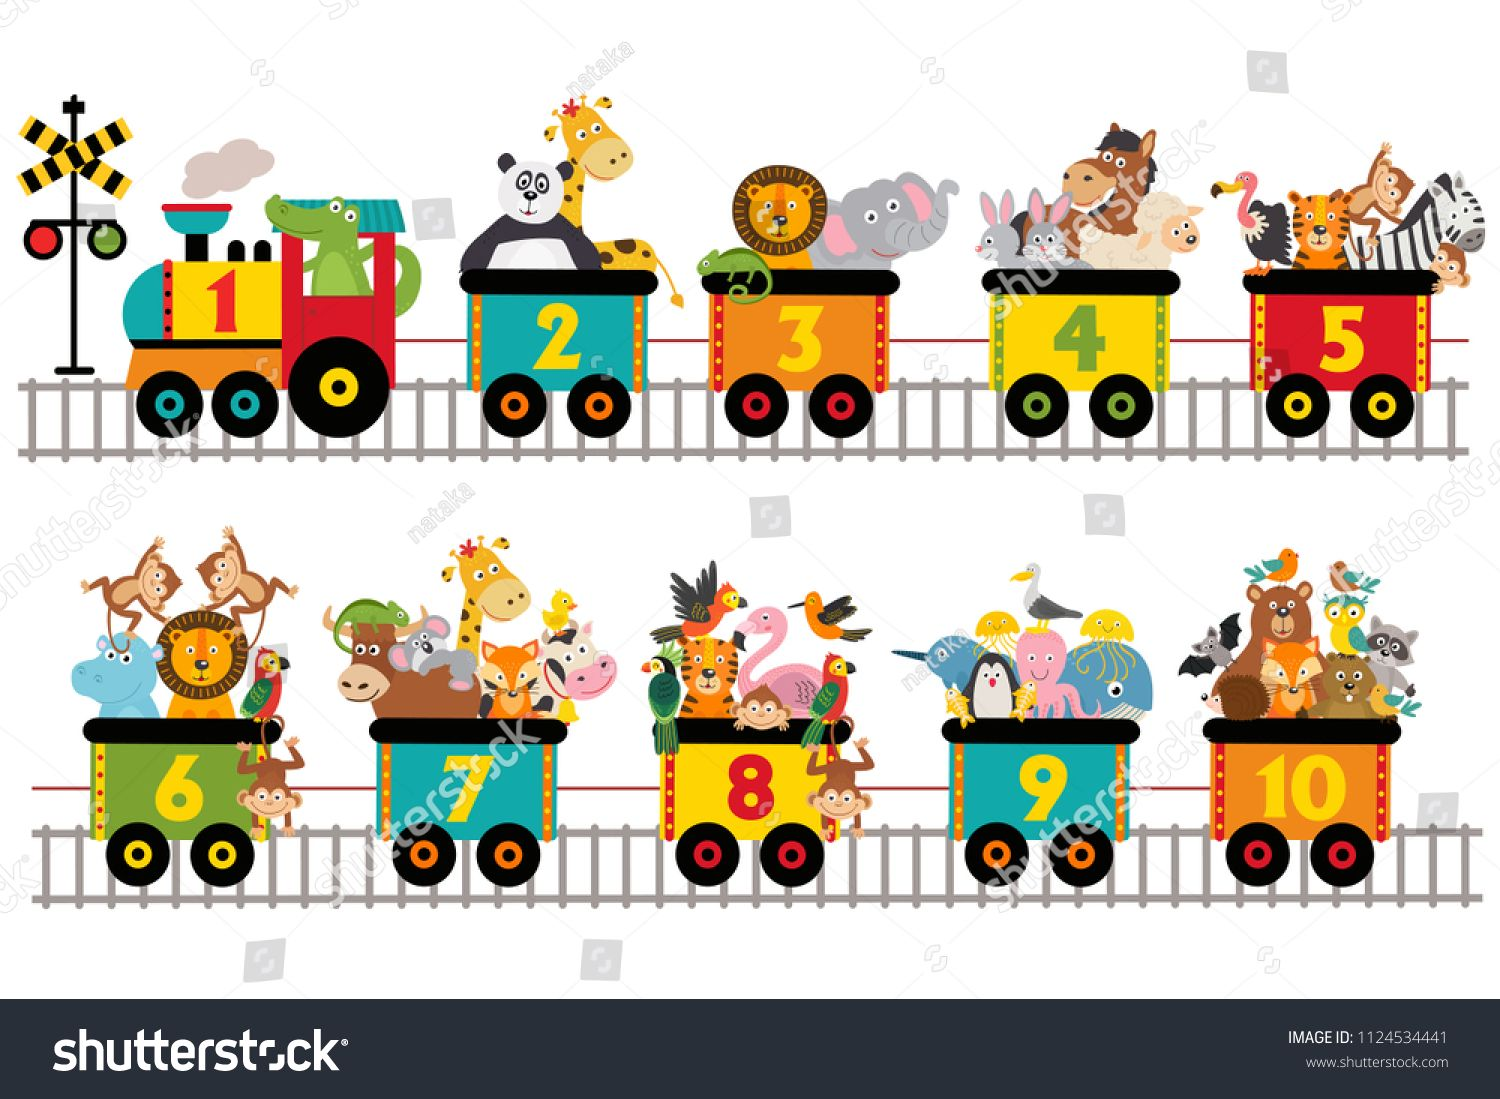 Funny Train With Number Of Animals